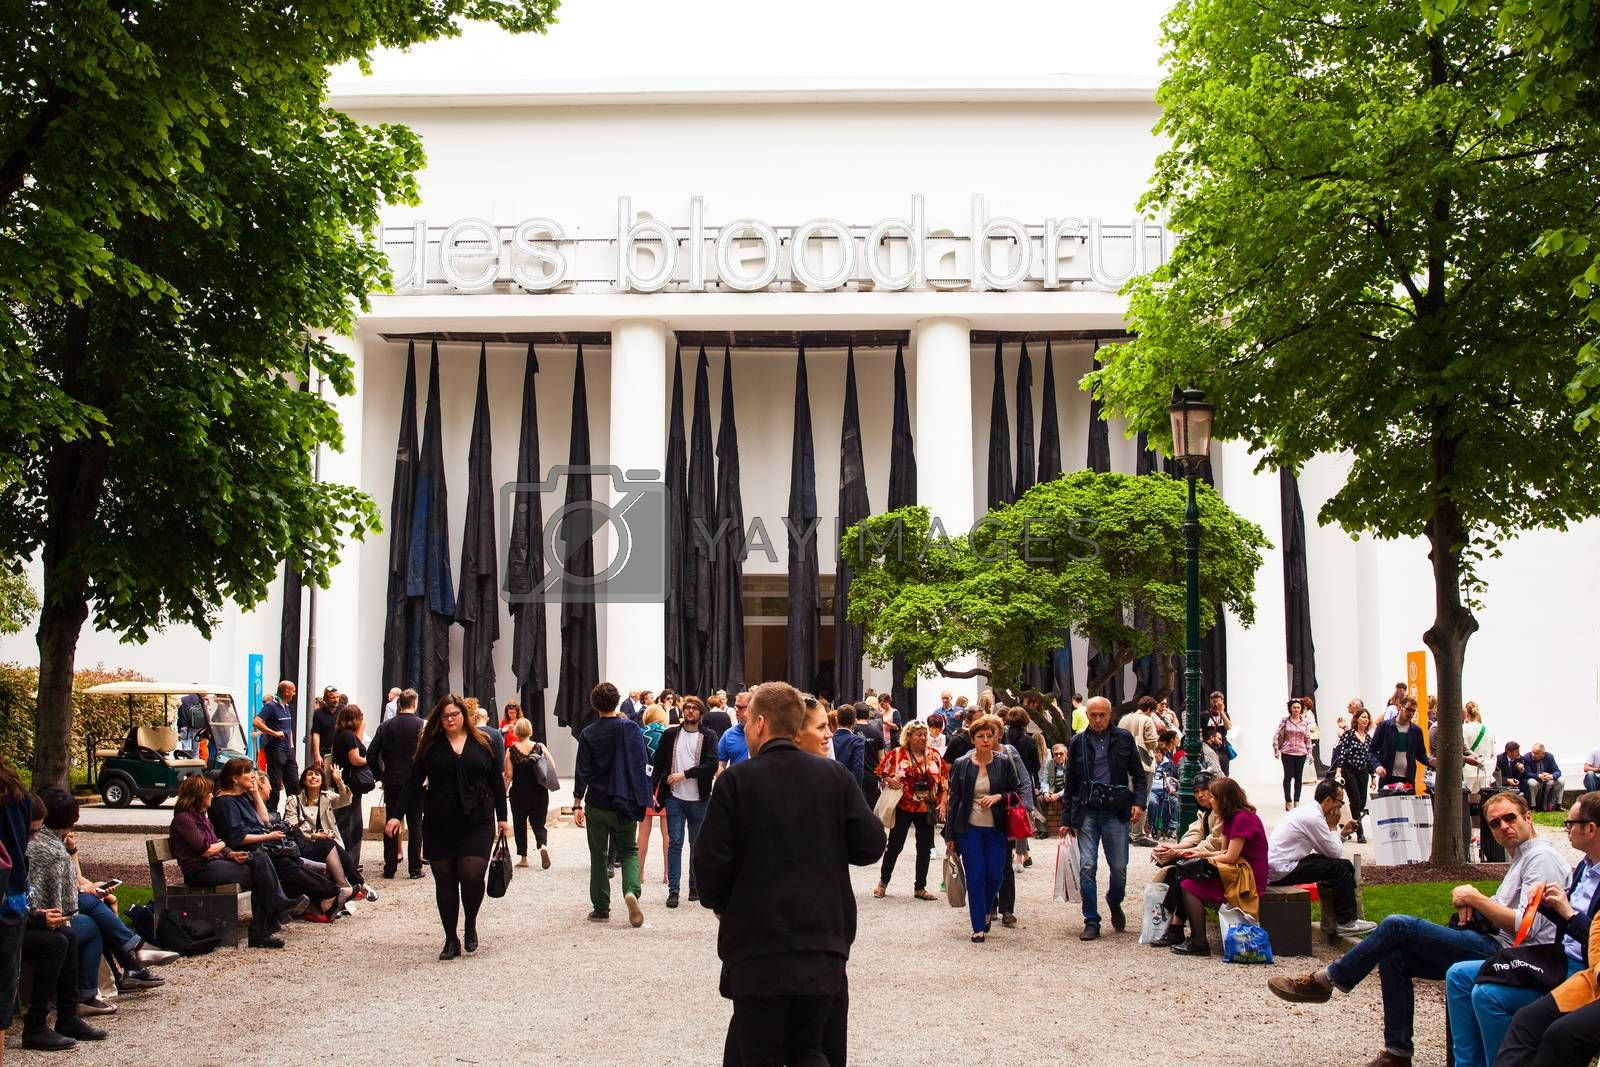 VENICE, ITALY - MAY 06: Entrance of Italian Pavilion at the 56th Art exhibition of Venice biennale on May 06, 2015